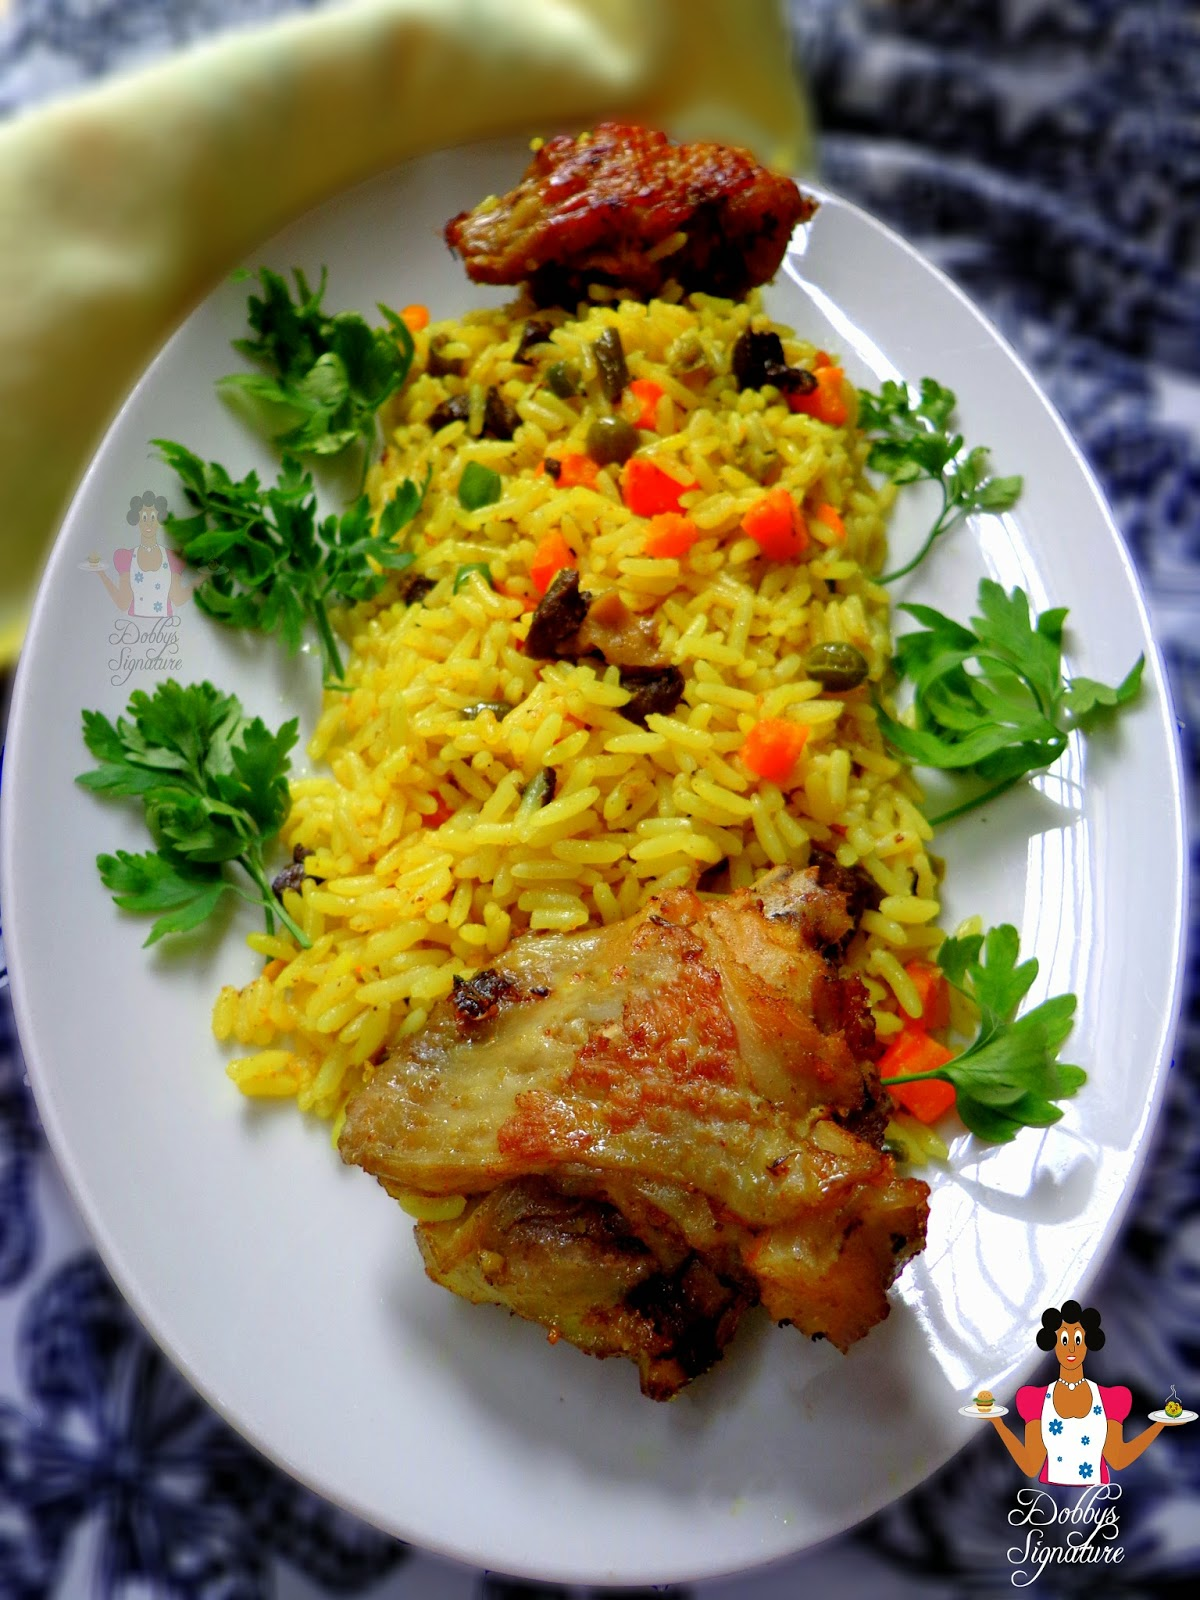 Dobbys signature nigerian food blog i nigerian food recipes i nigerian fried rice forumfinder Choice Image